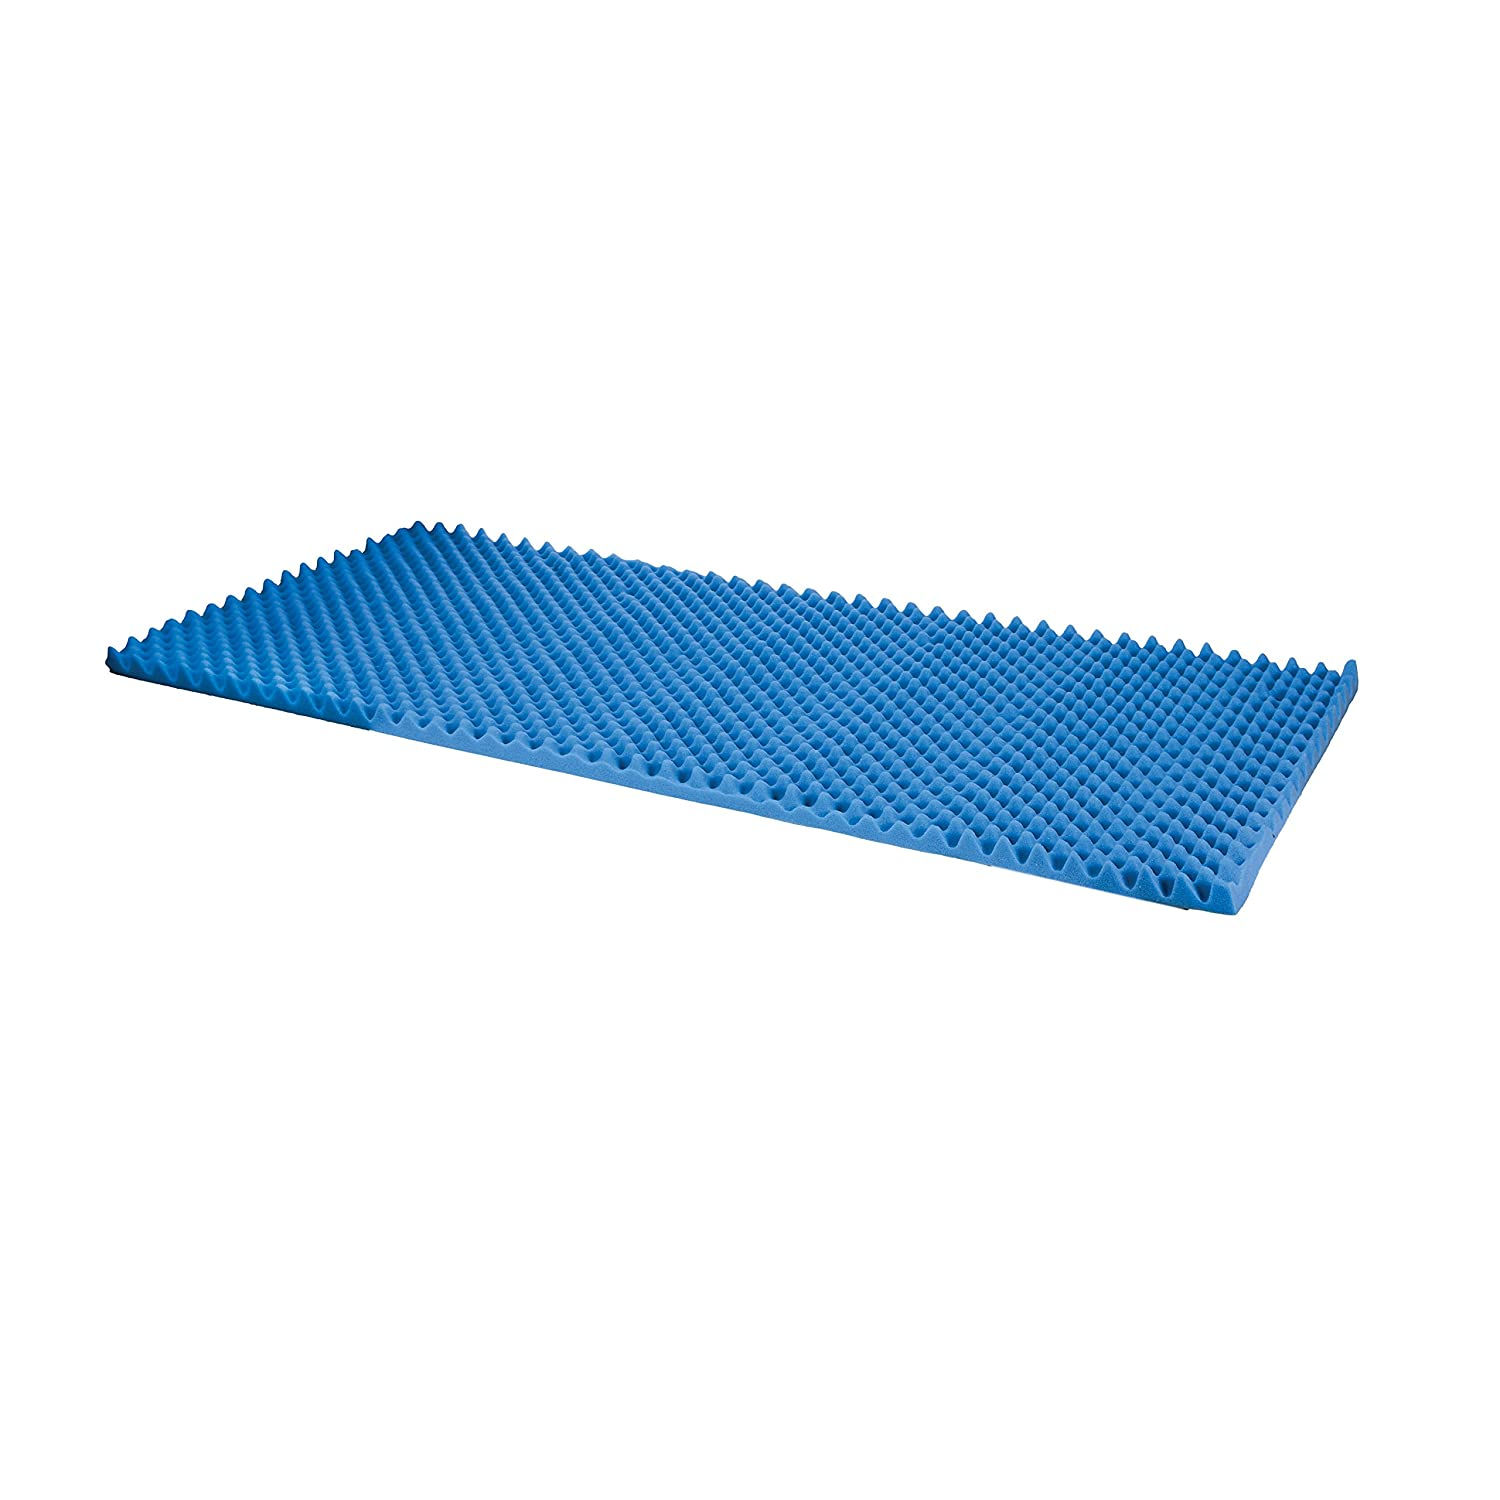 Duro-Med Foam Bed Topper, Hospital Bed Pad, Foam Bed Pad, Soft Foam Bed Topper for Support, Blue, Made in the USA, 33 x 72 x 2 Inches 552-8002-0000